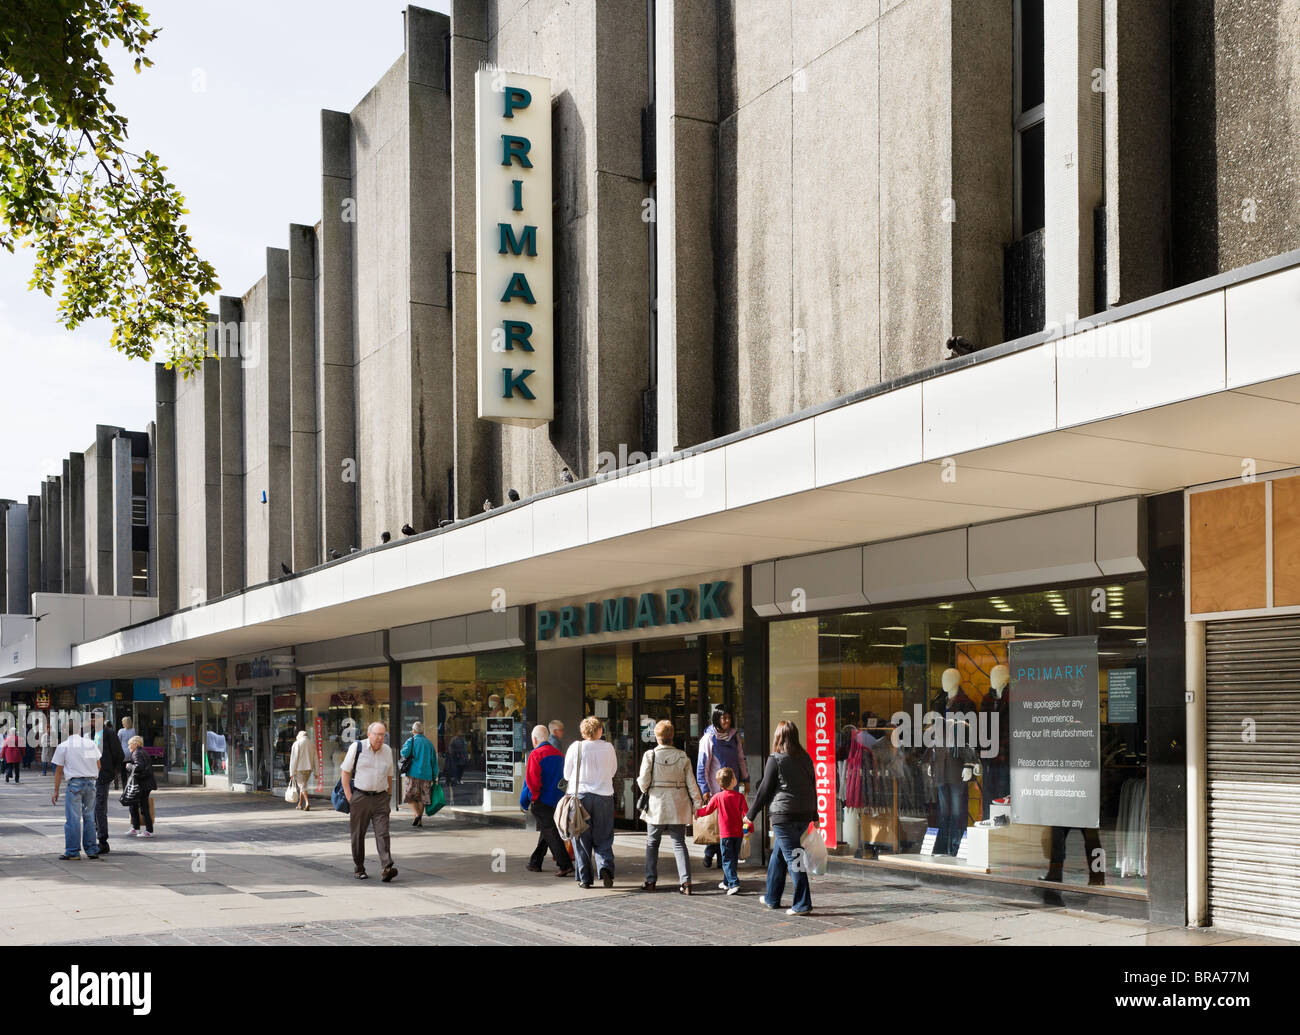 Primark discount store in Huddersfield town centre, West Yorkshire, England, UK - Stock Image